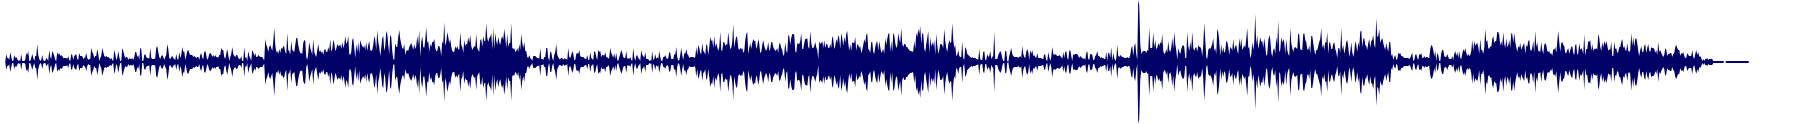 waveform of track #75061